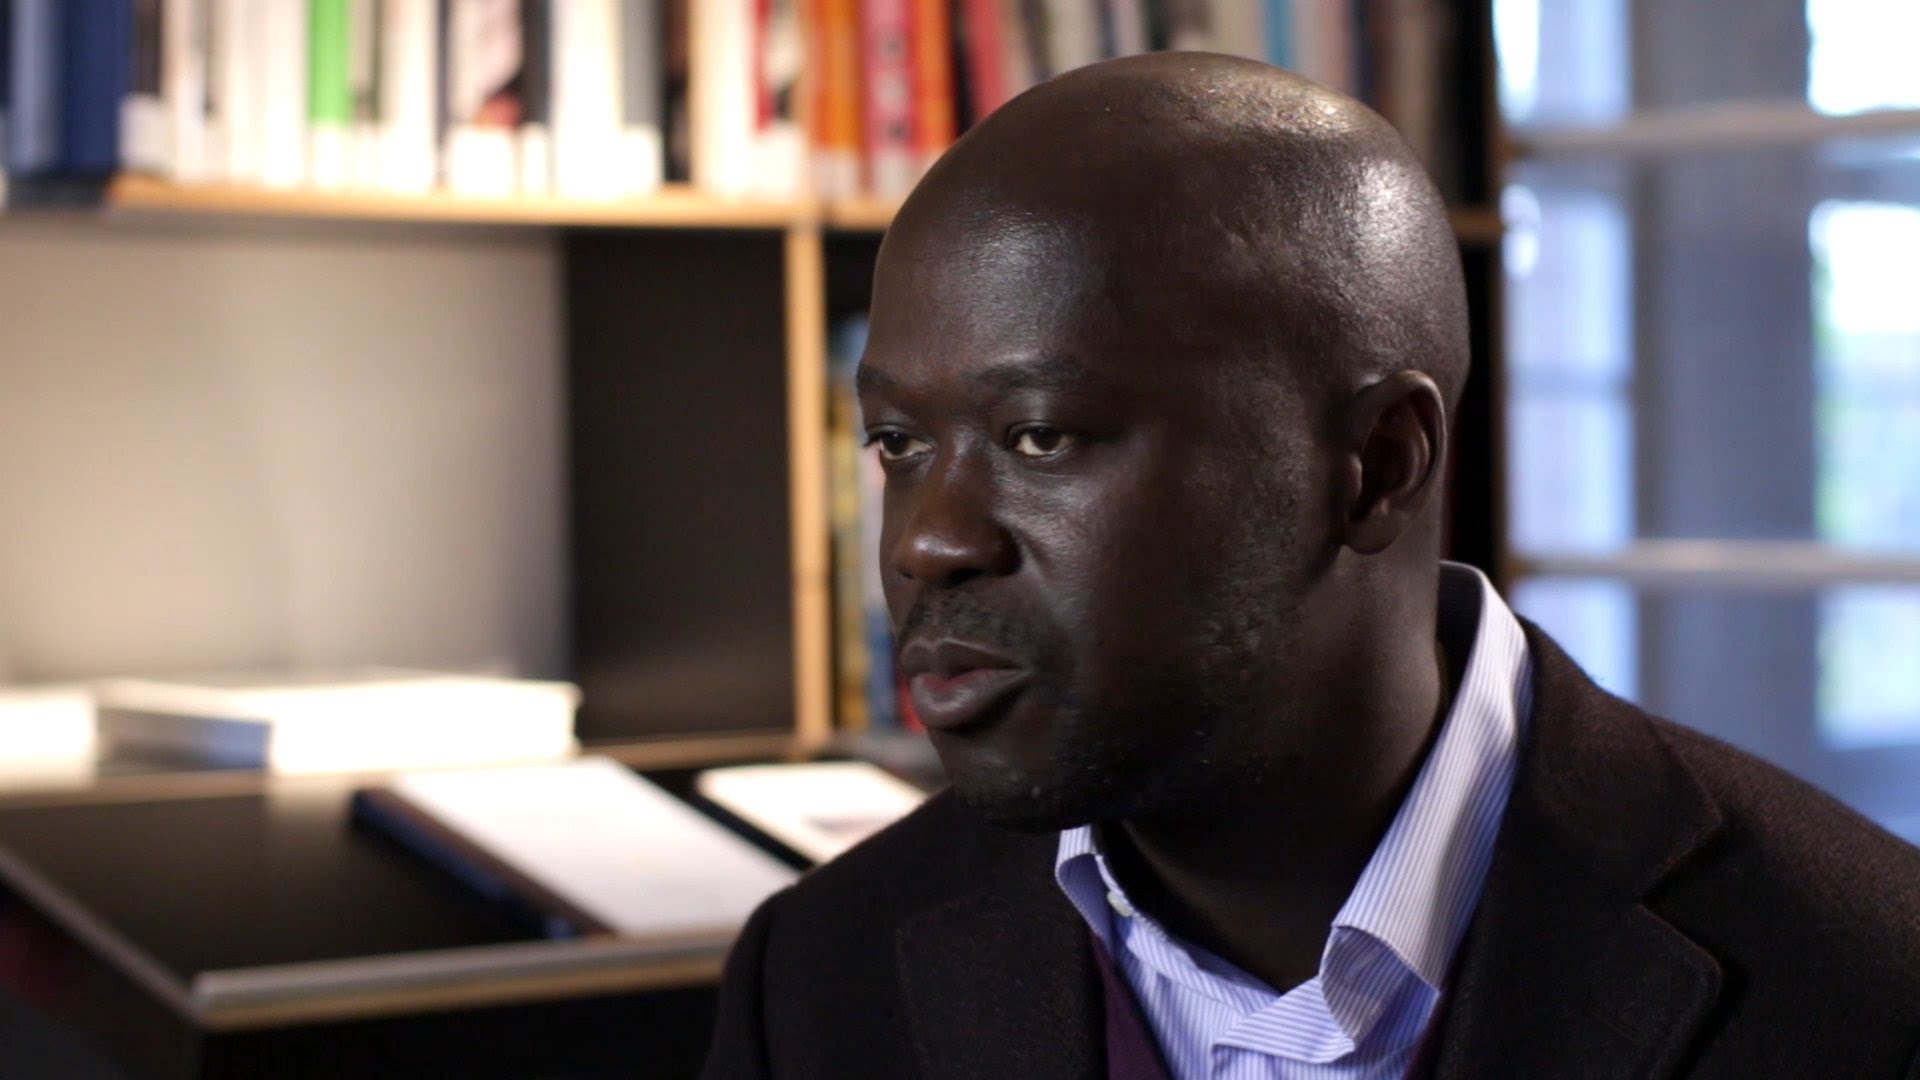 Komplexität und Wandel: Interview mit Architekt David Adjaye (London)